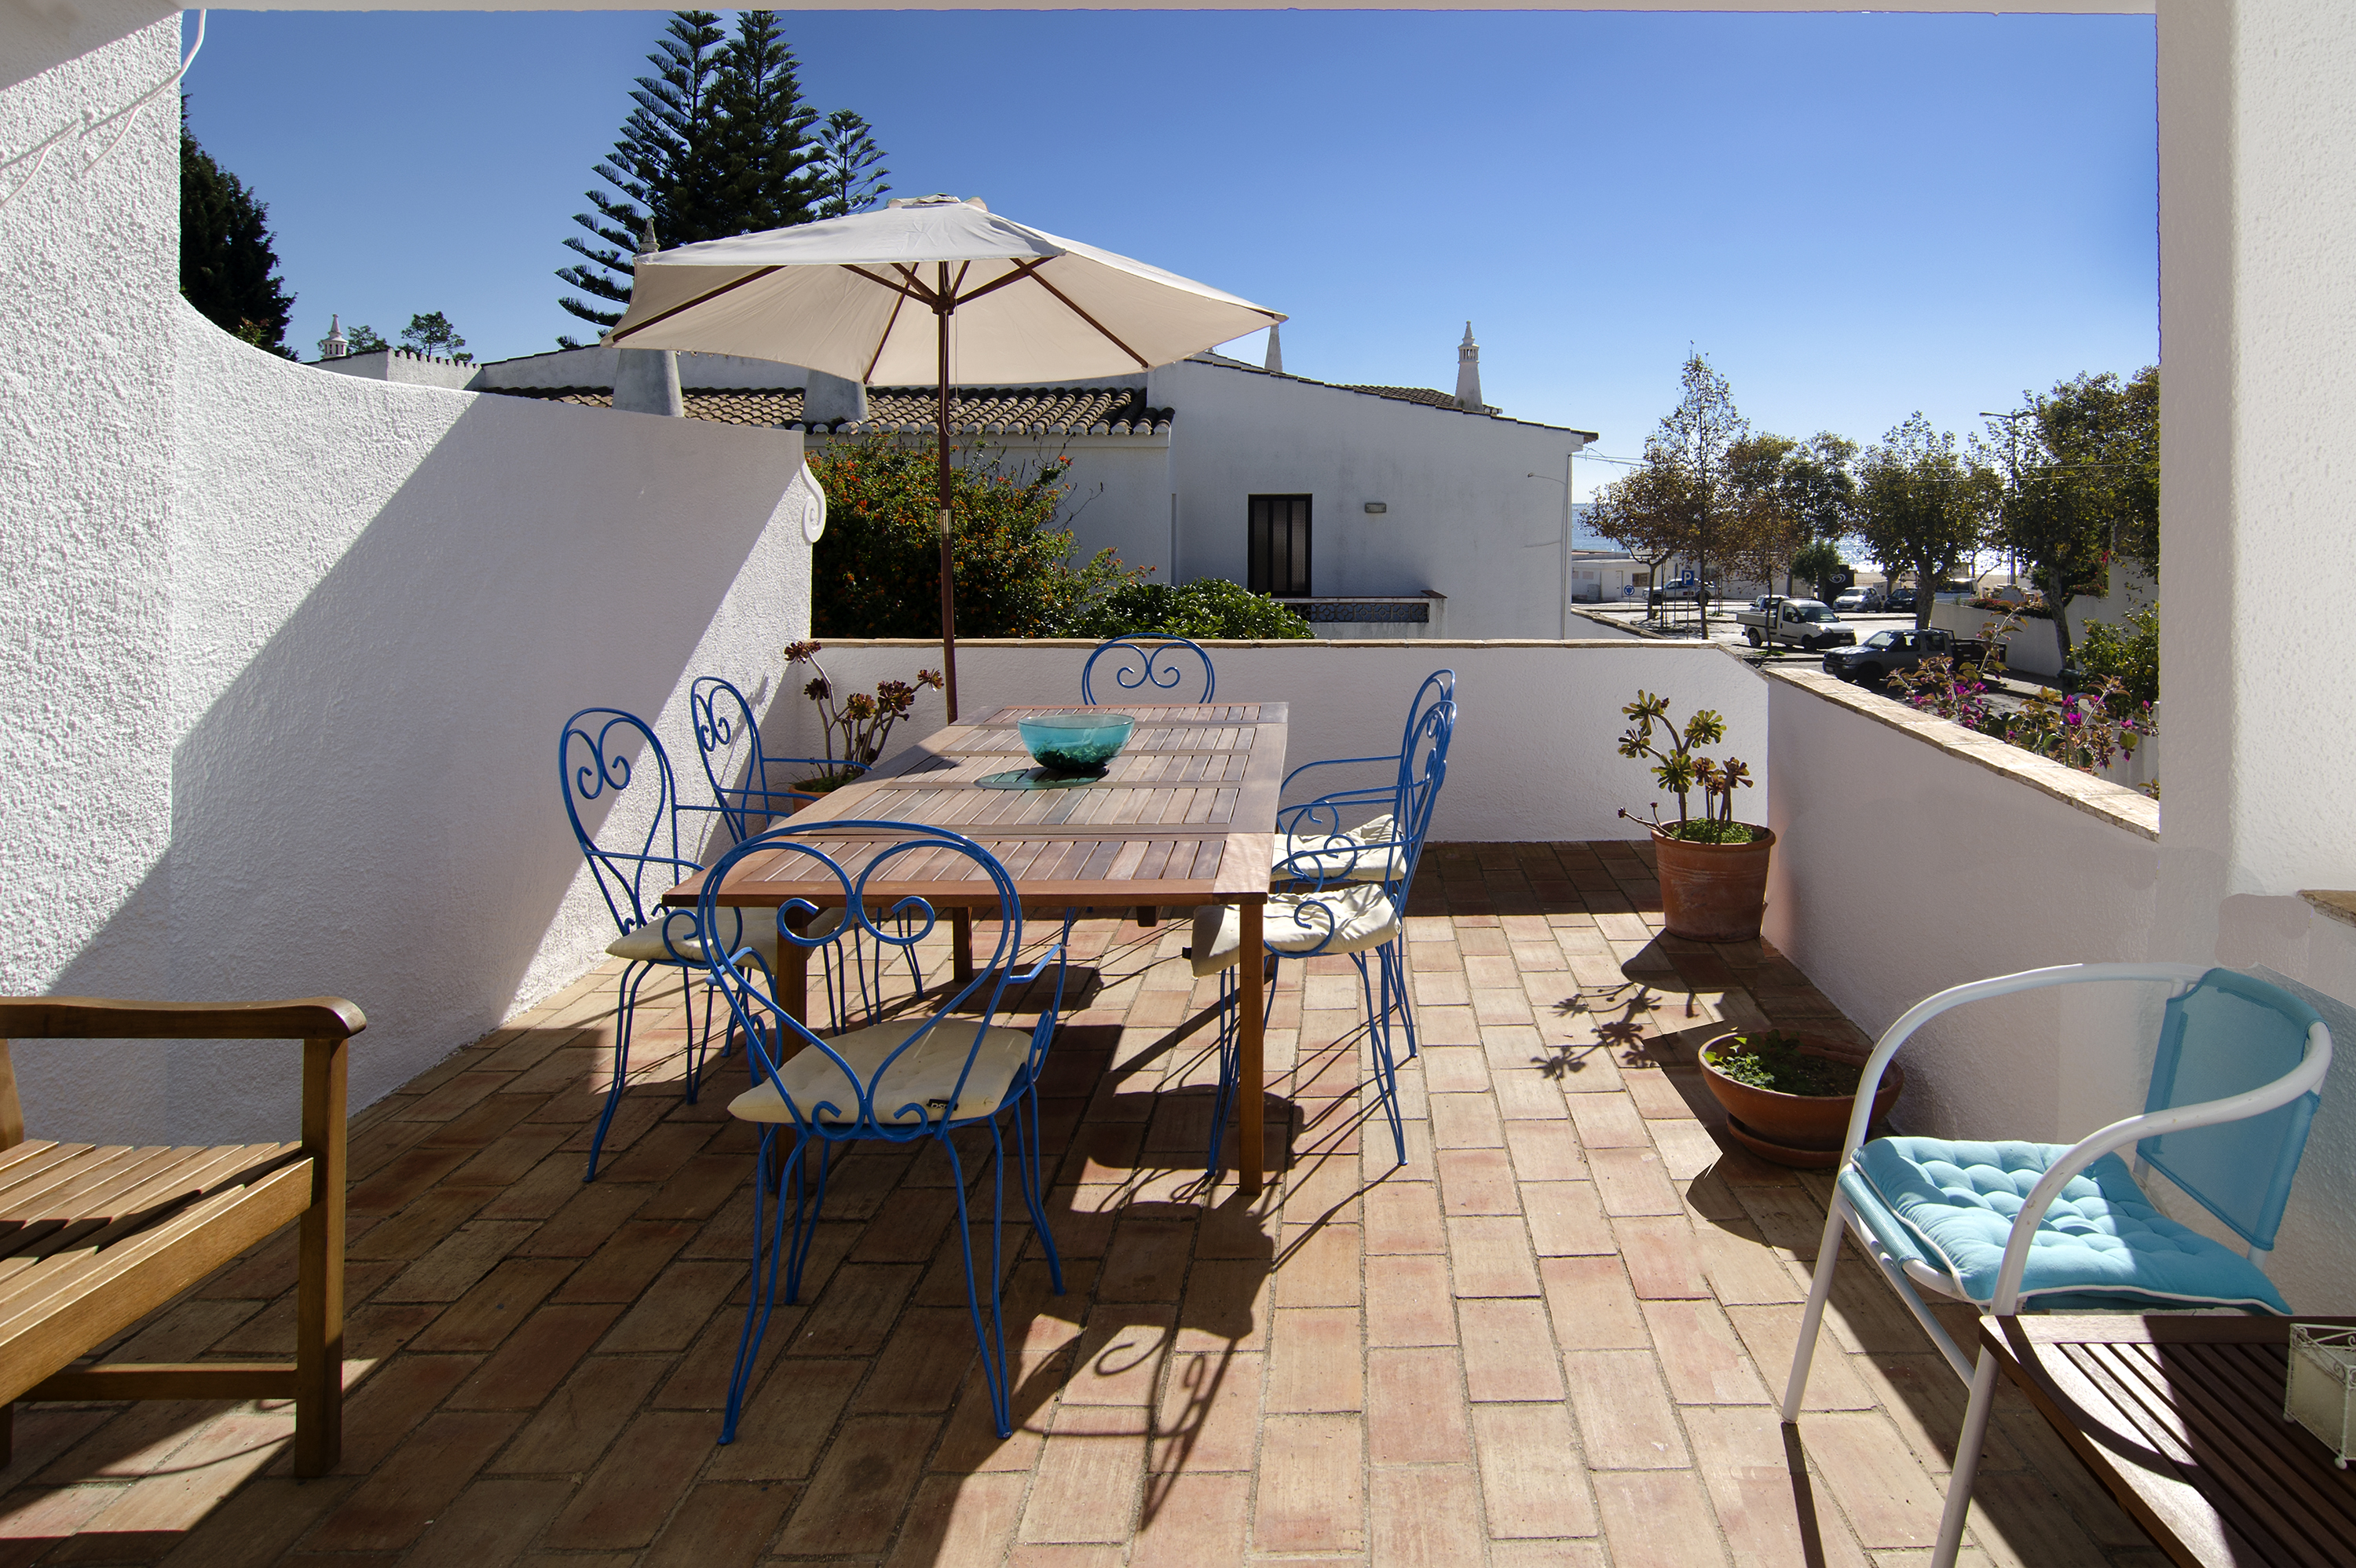 604 Casa Cantagallo, sleeps 6, historic center Lagos, walking distance beach, sea views, Algarve, Portugal